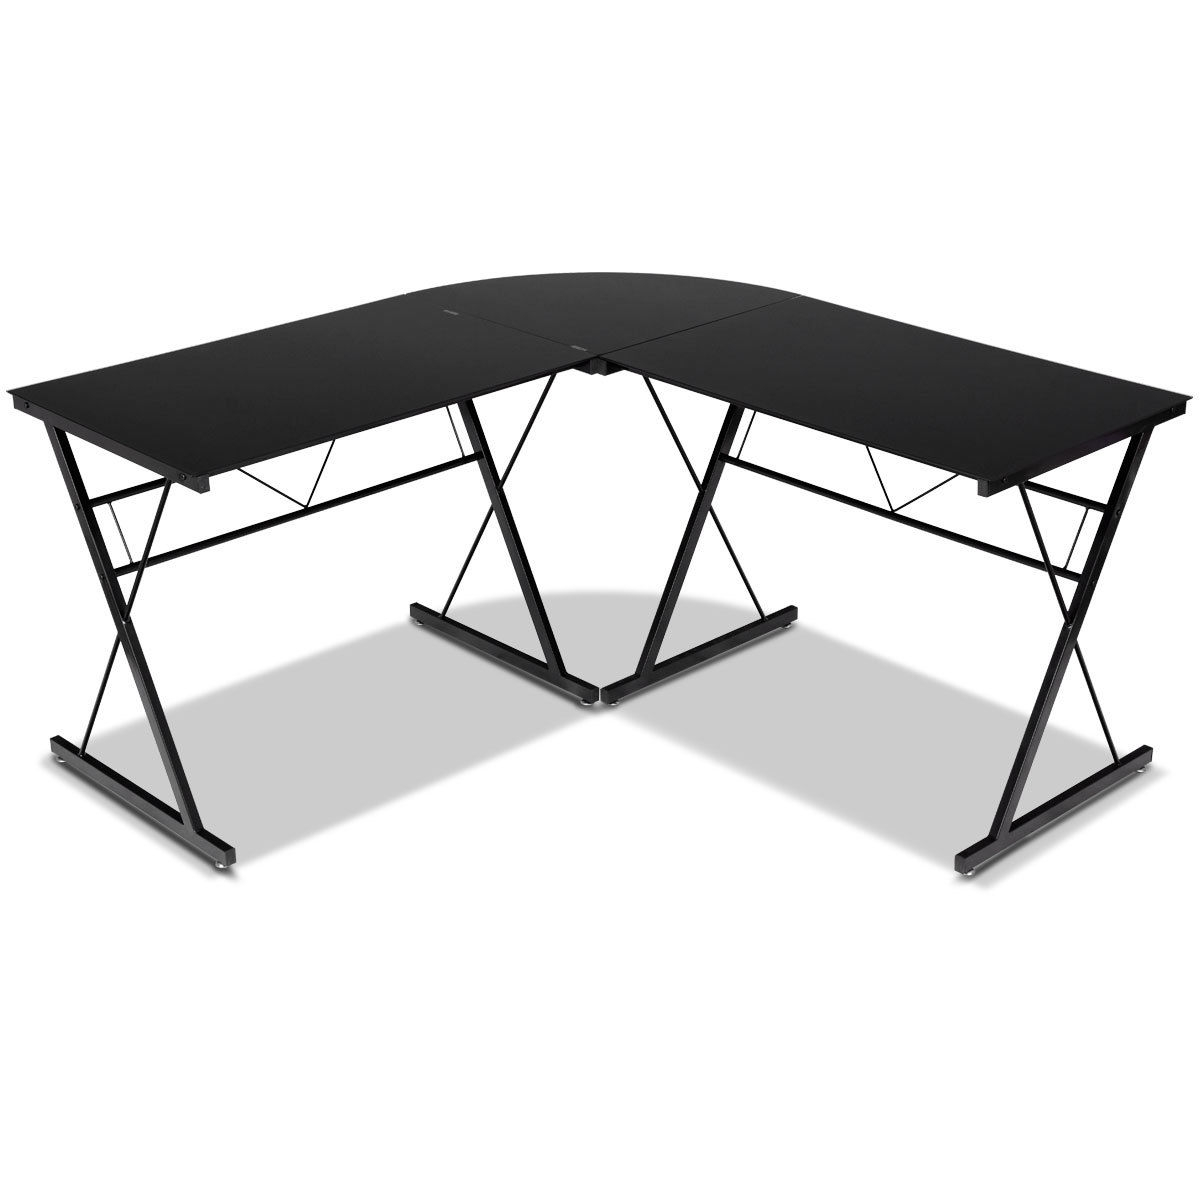 L-Shape Computer Desk Corner Laptop Table with Tempered Glass